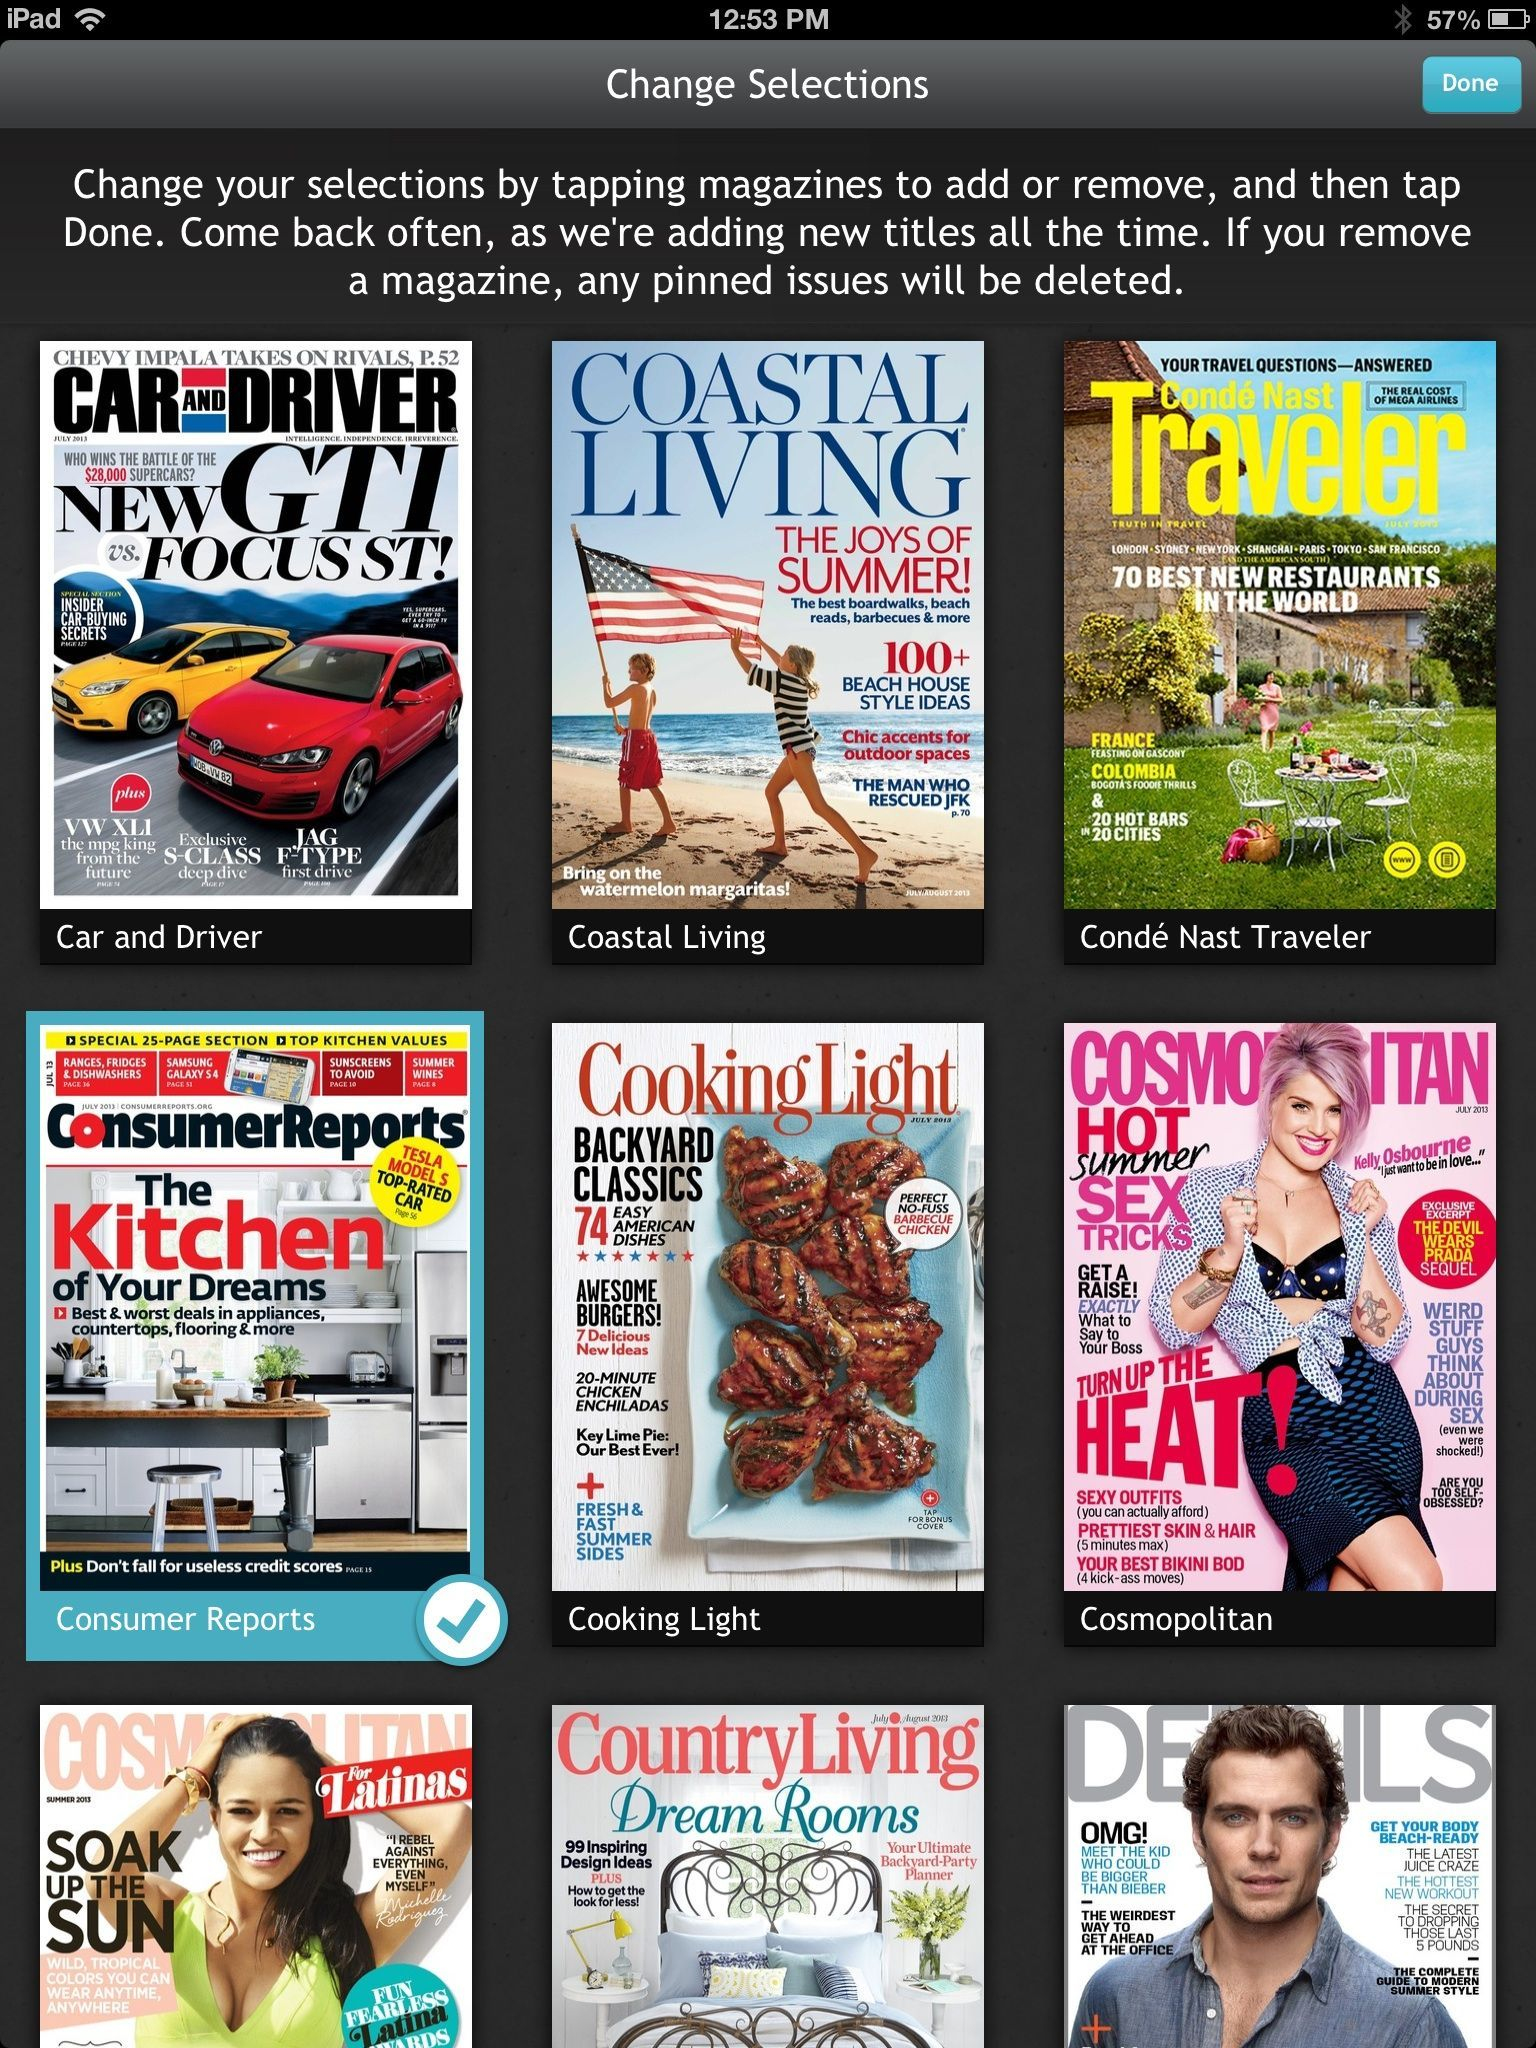 Next Issue now offers nearly 100 magazine selections via a Netflix-style subscription model.